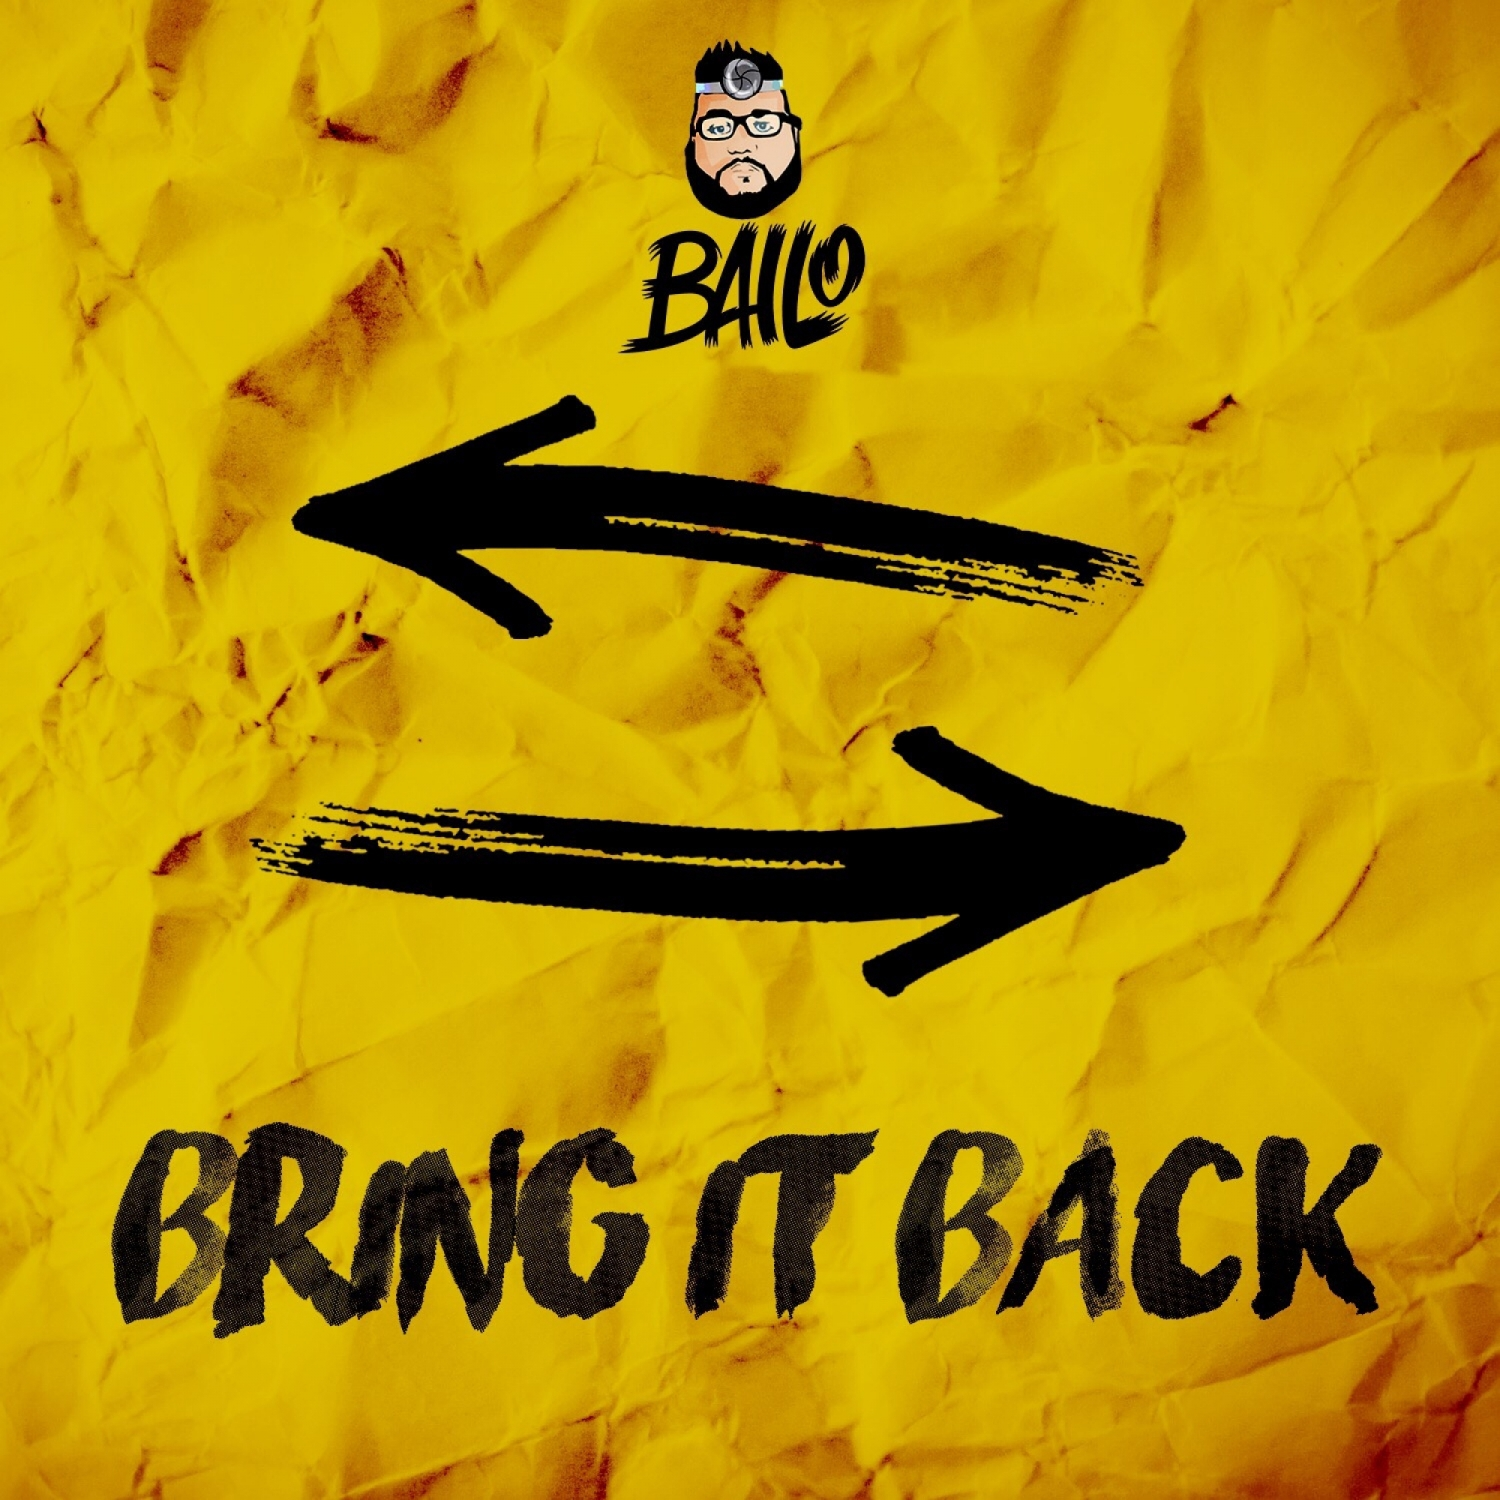 Bailo - Bring It Back (Original Mix)